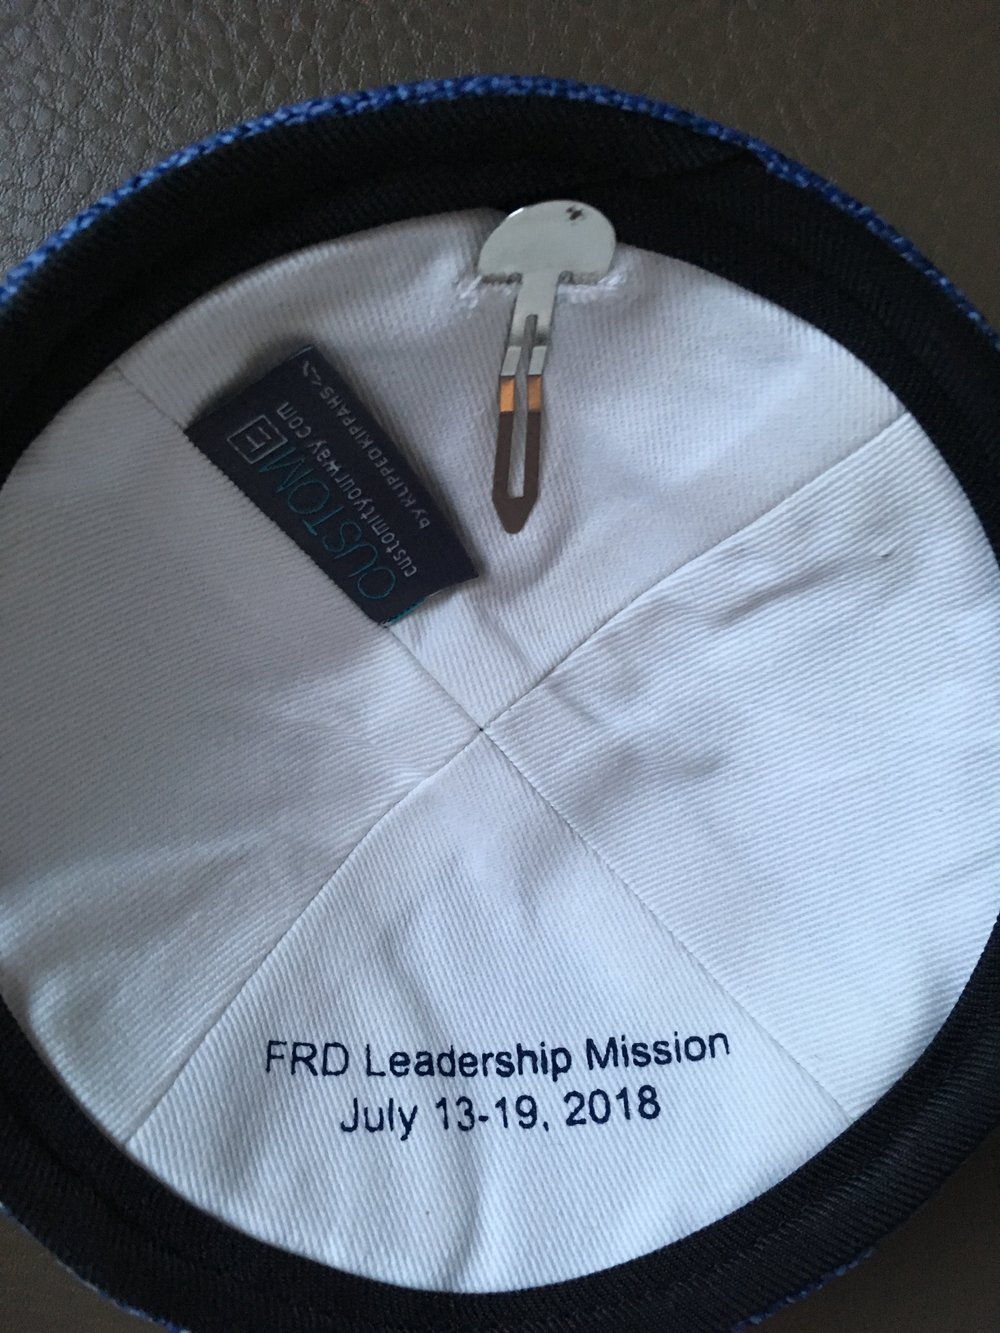 Special Federation Kippah for the Kippah Walk